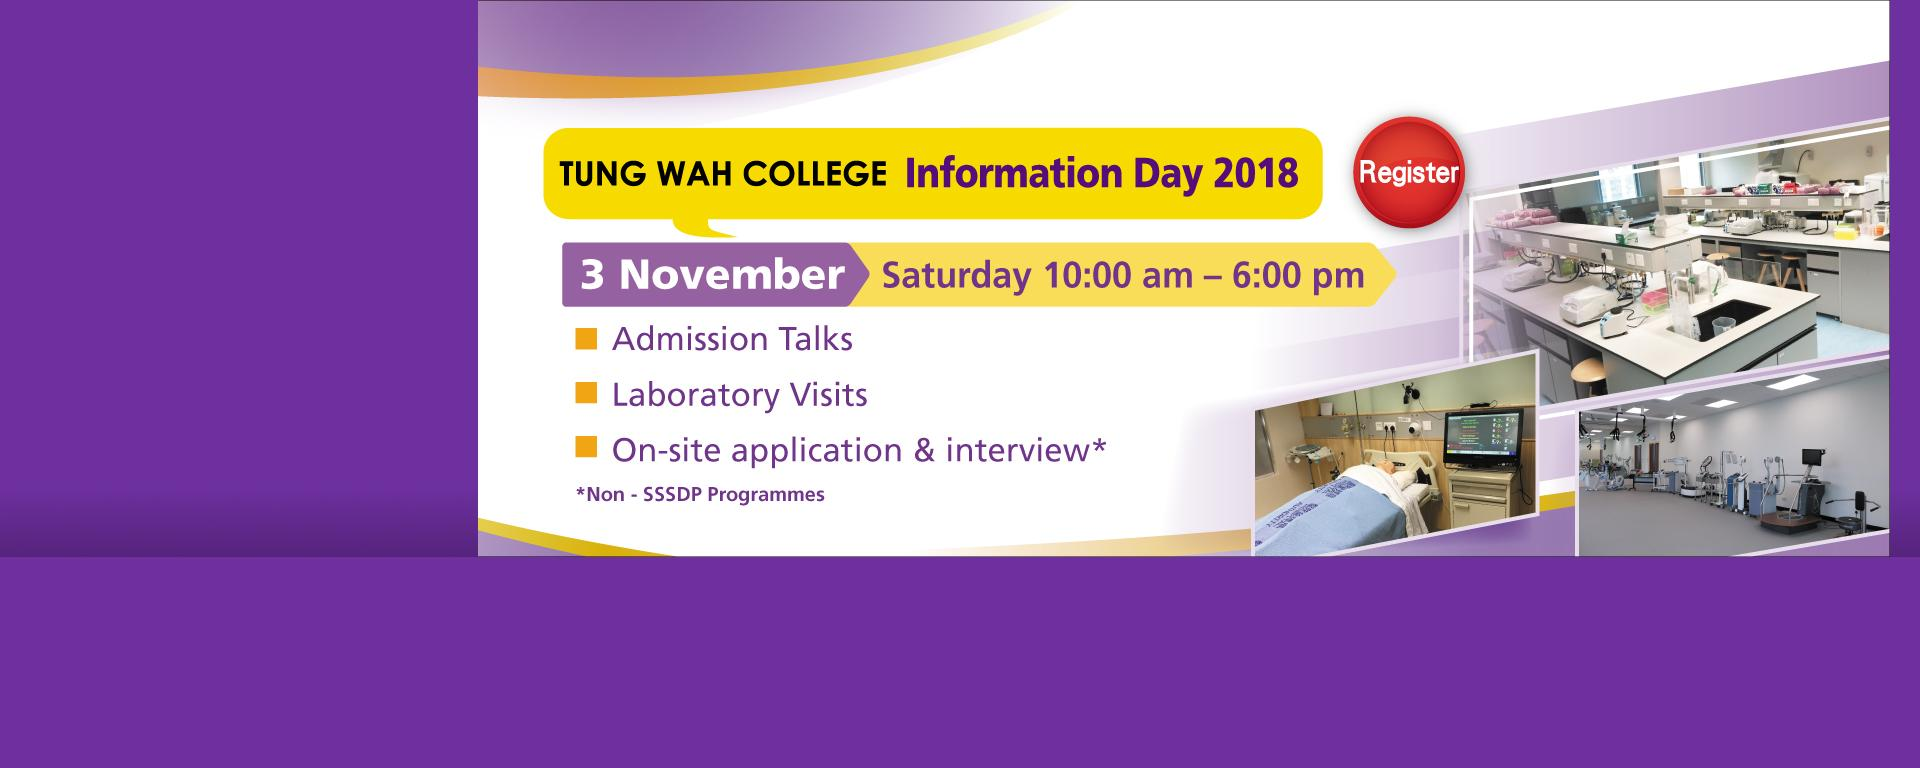 Tung Wah College Information Day 2018